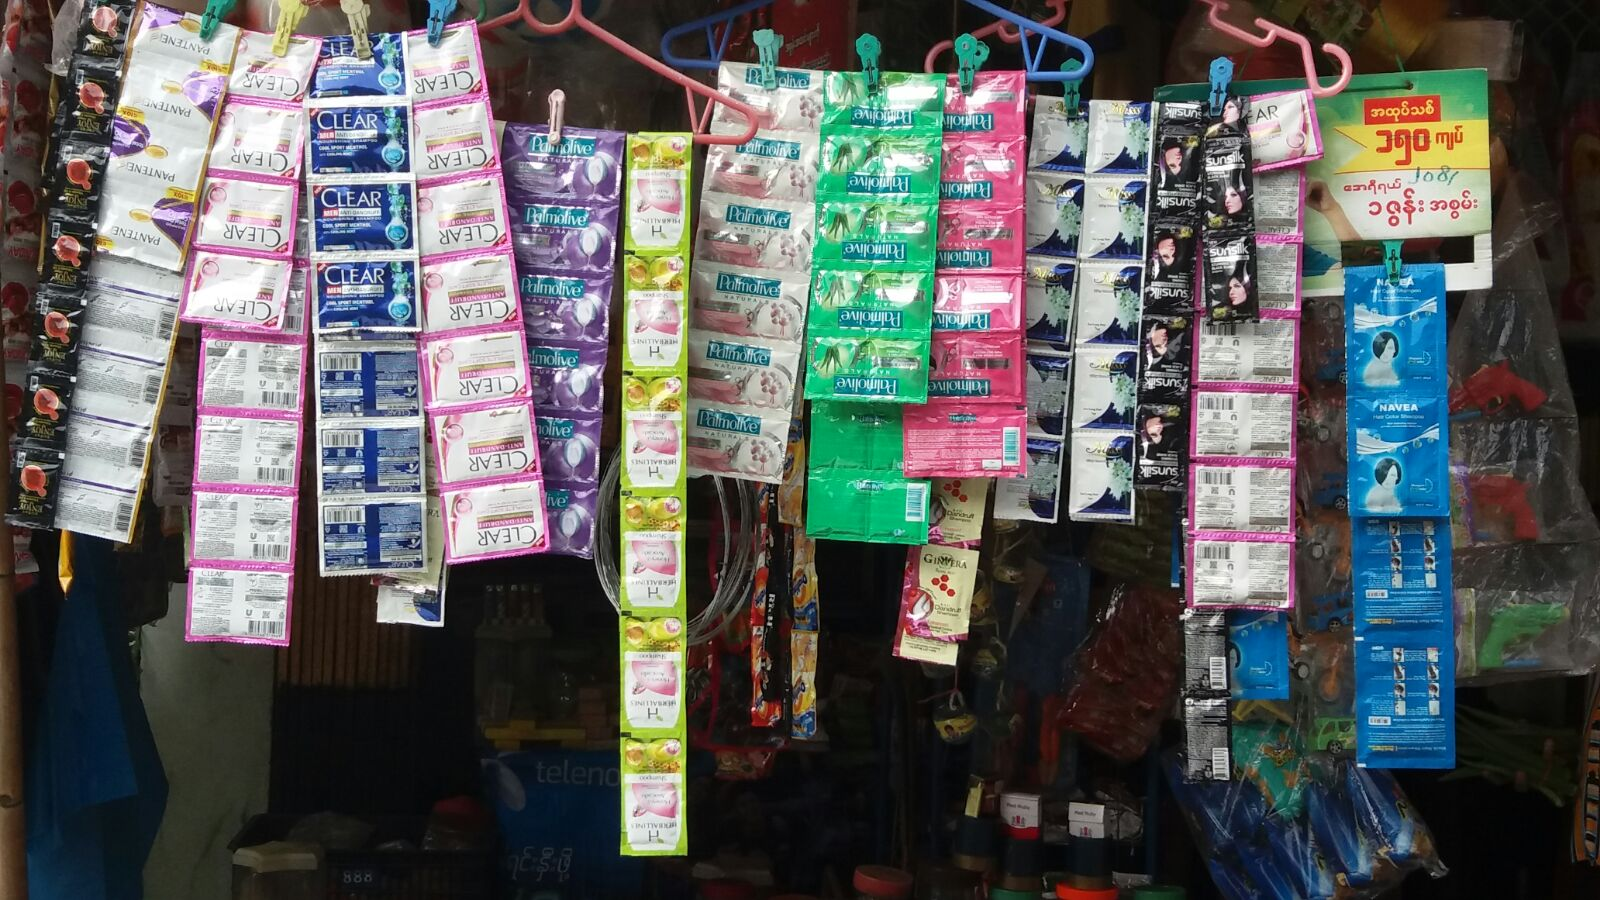 Care products for sale at the local market.